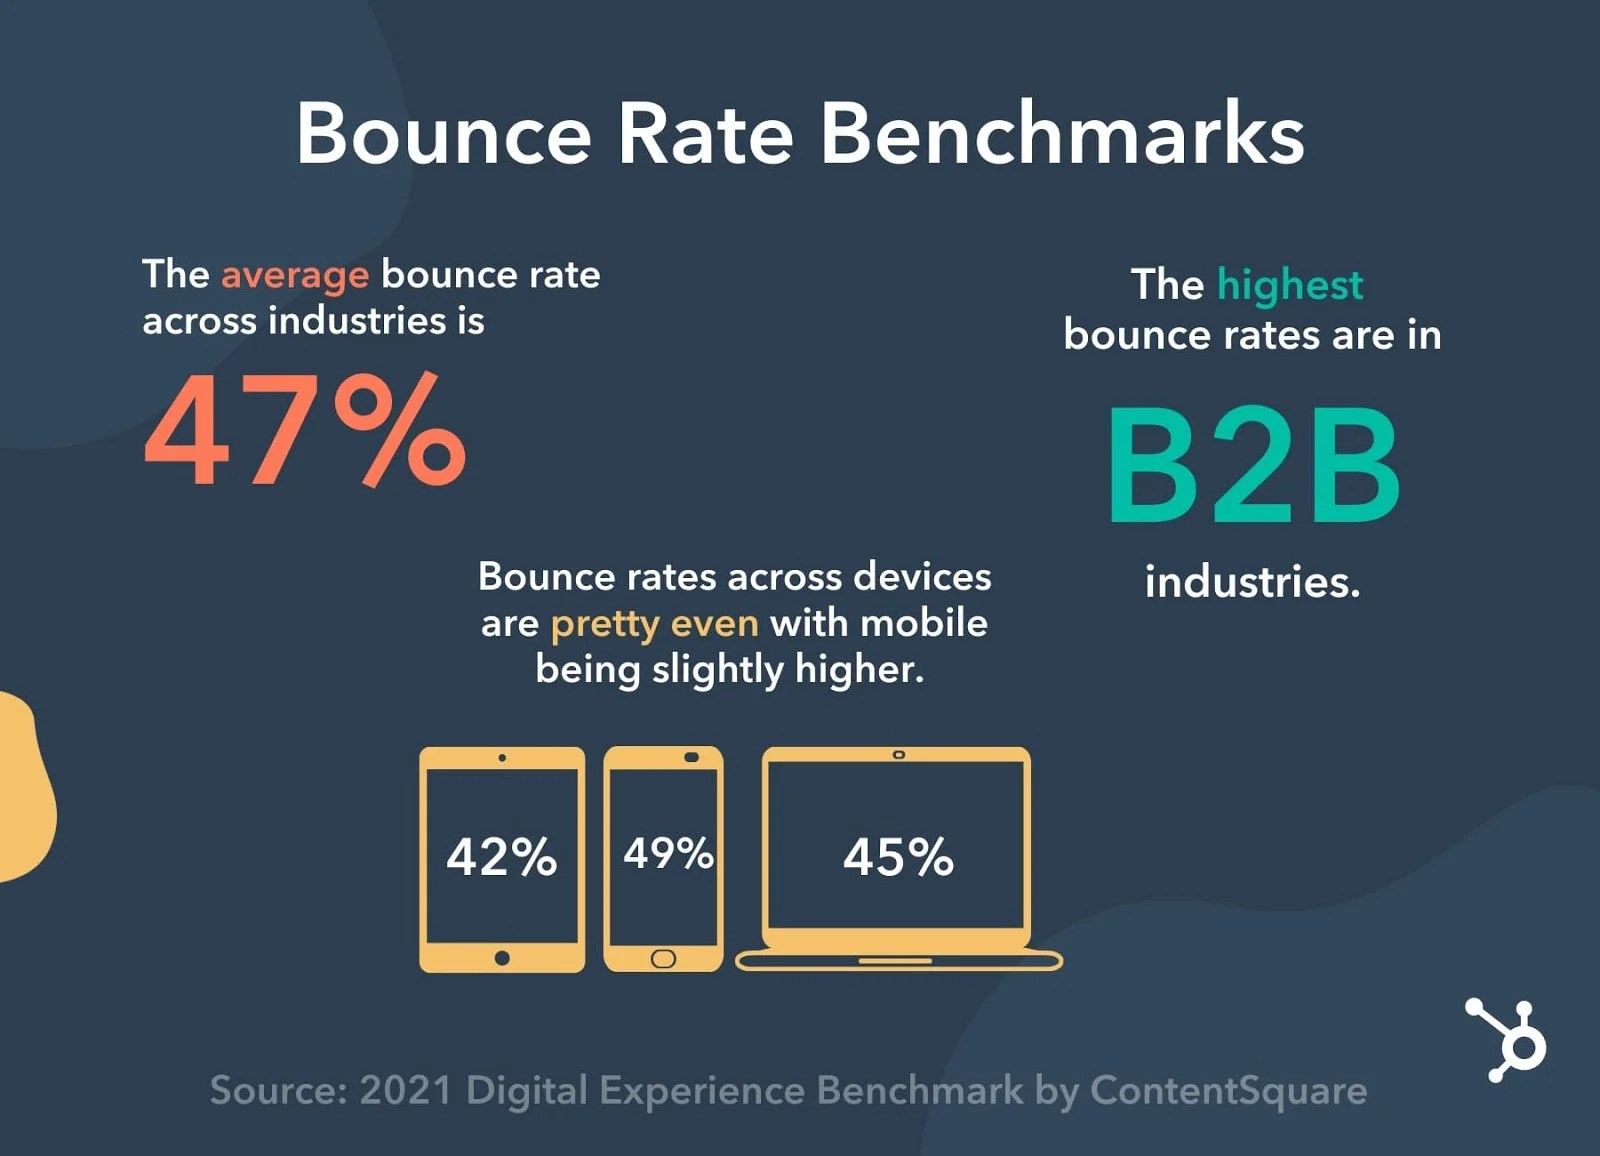 Bounce rate benchmarks